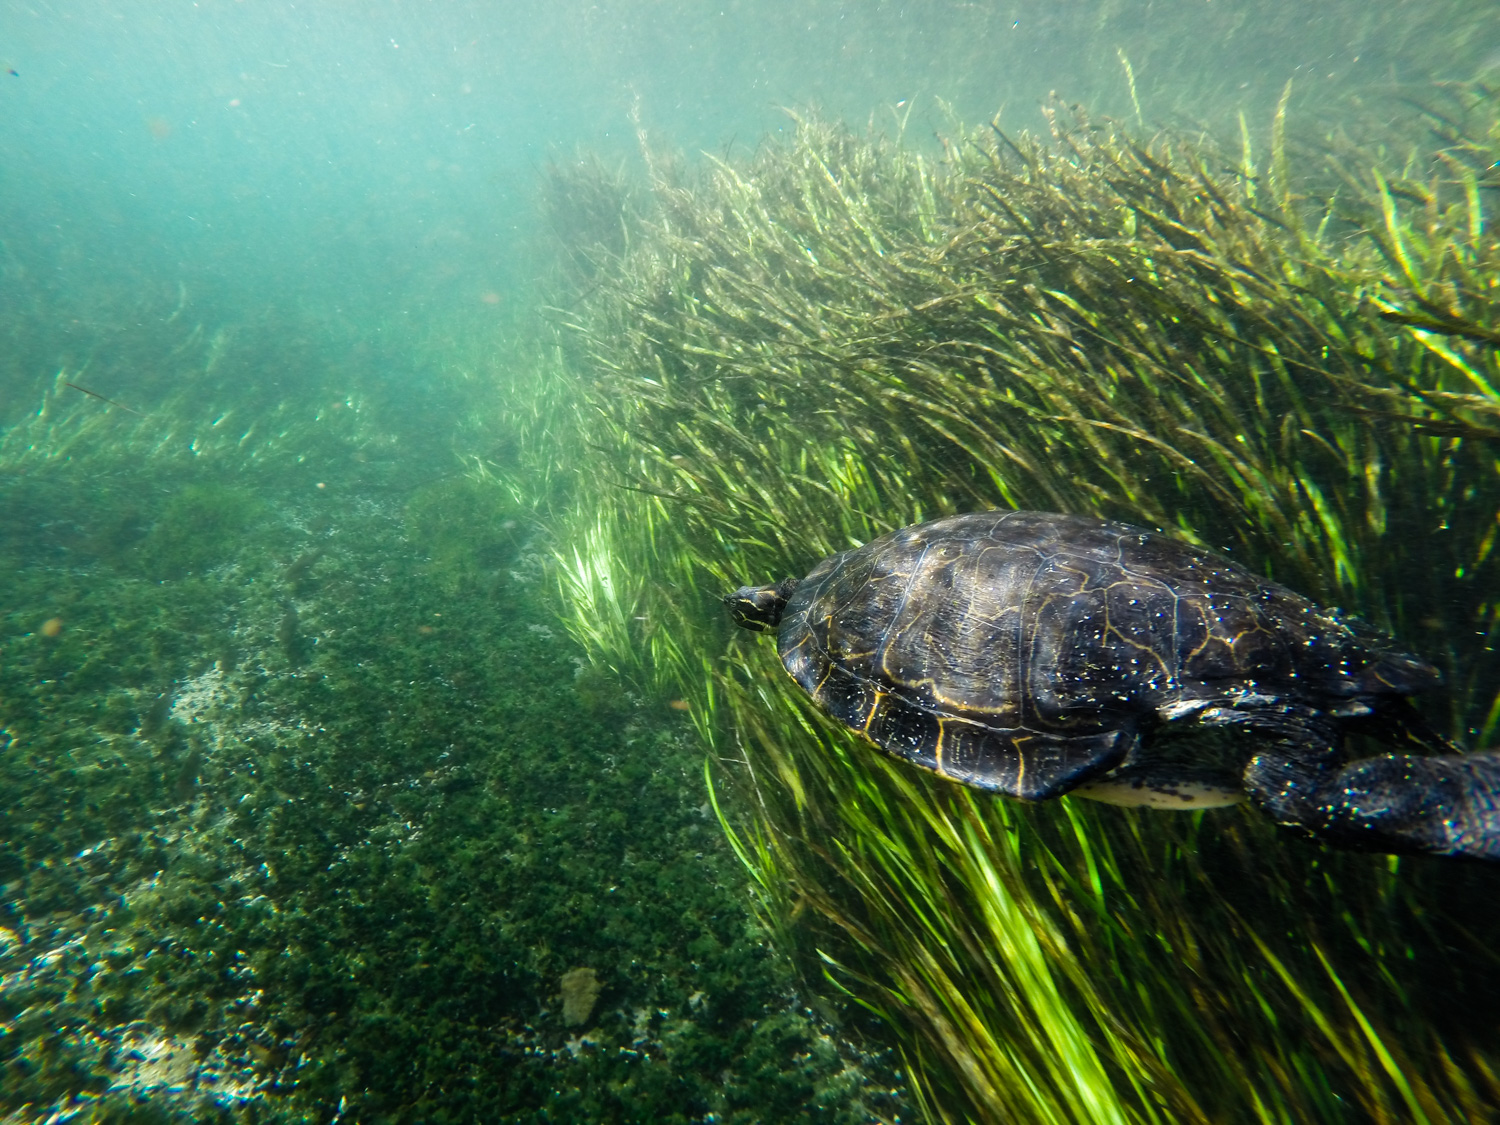 A river cooter (Pseudemys concinna) swims in the Ichetucknee River.